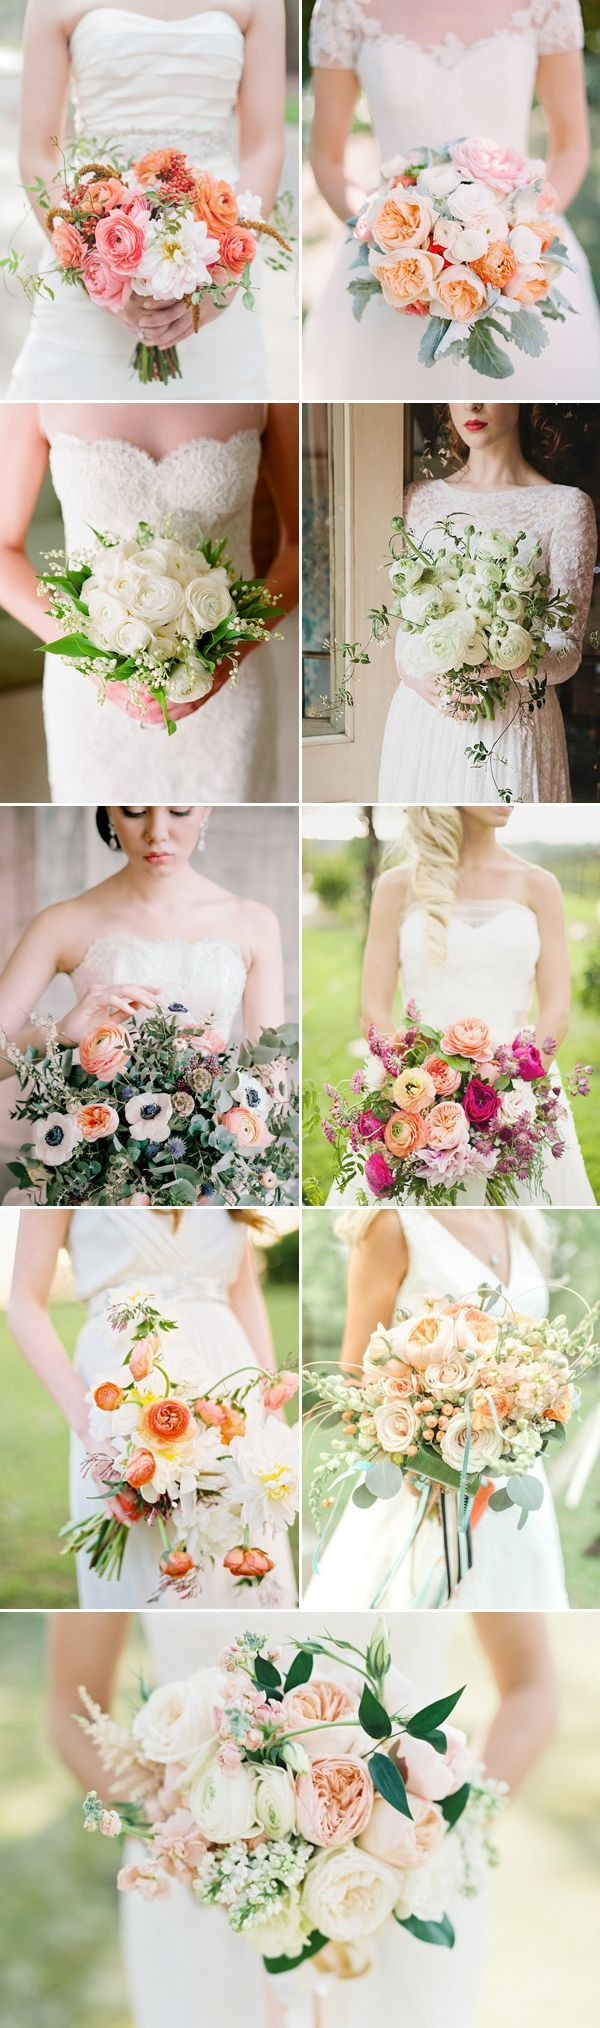 best bouquets images on pinterest bridal bouquets wedding